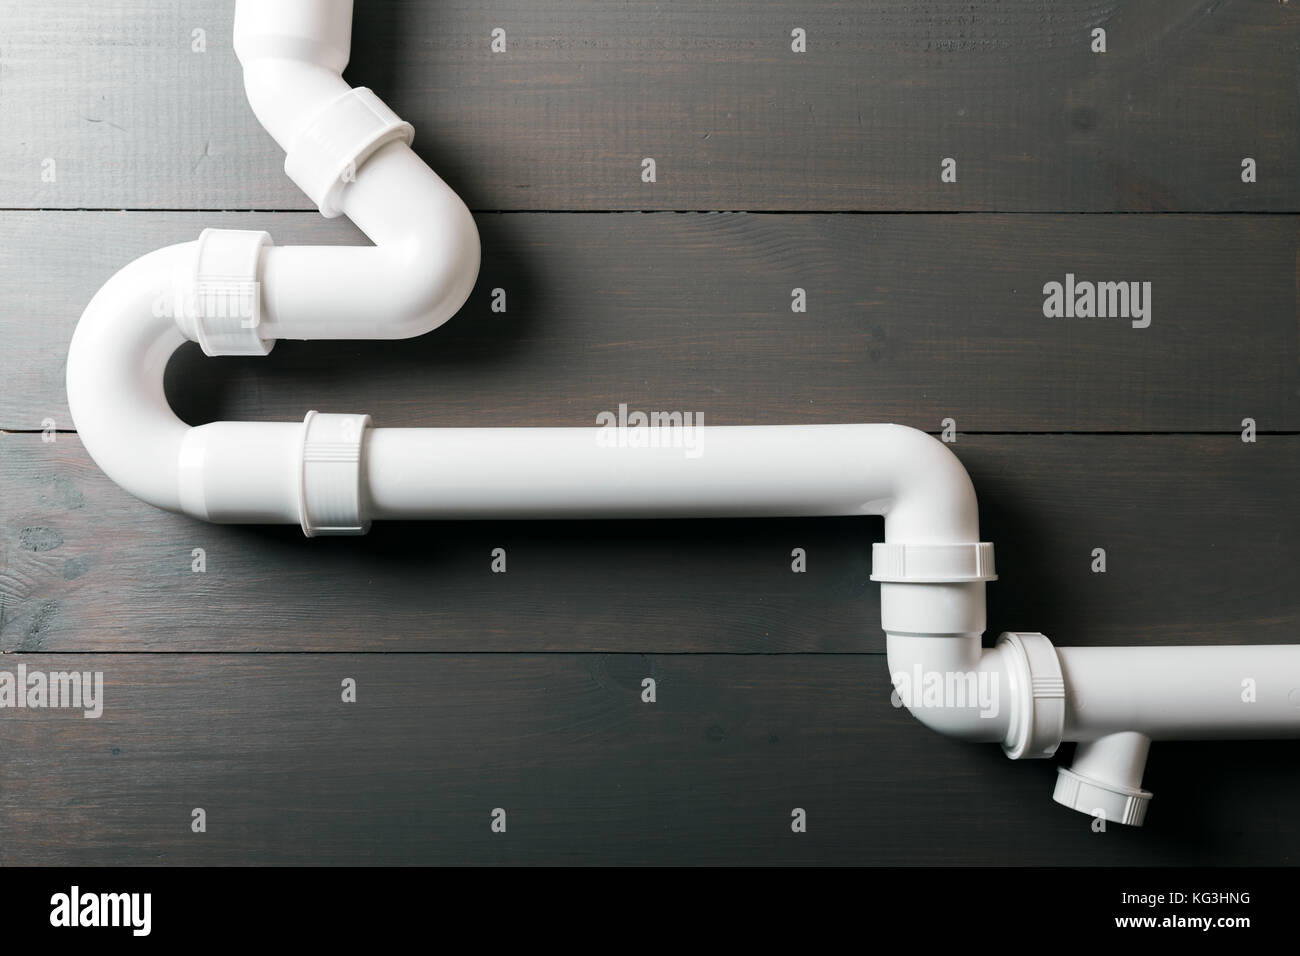 Wooden water pipe stock photos wooden water pipe stock for White plastic water pipe